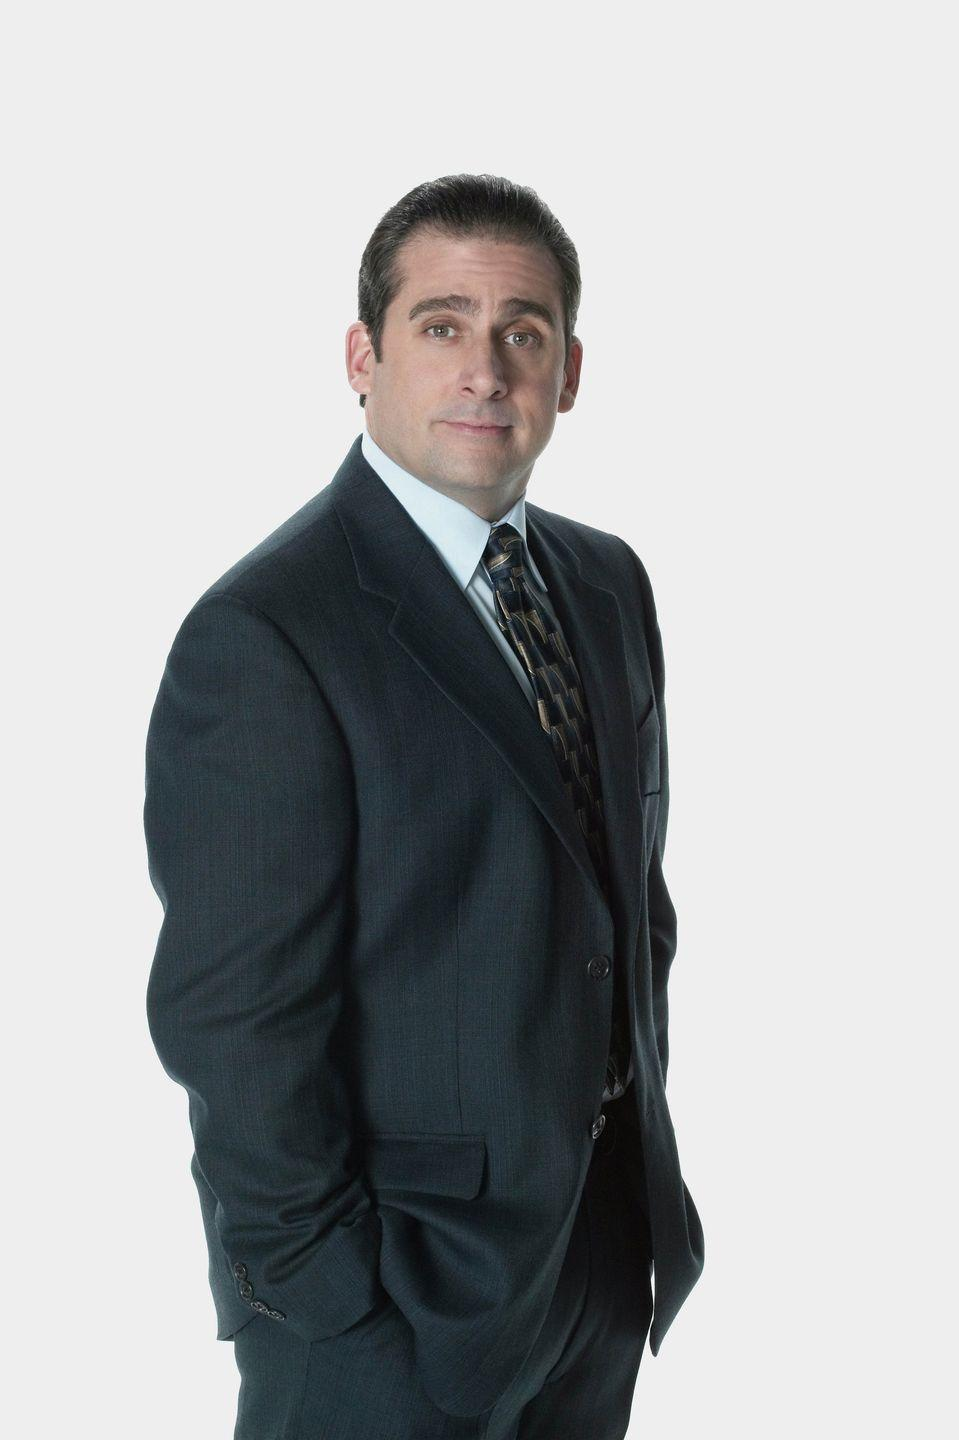 <p>Back in 2005, Steve Carell was known for playing Michael Scott on <em>The Office</em>, and, well, not much else aside from the guy in <em>The 40-Year-Old Virgin</em>. Carell was so well-known as Michael Scott that they almost seemed to be the same person. </p>